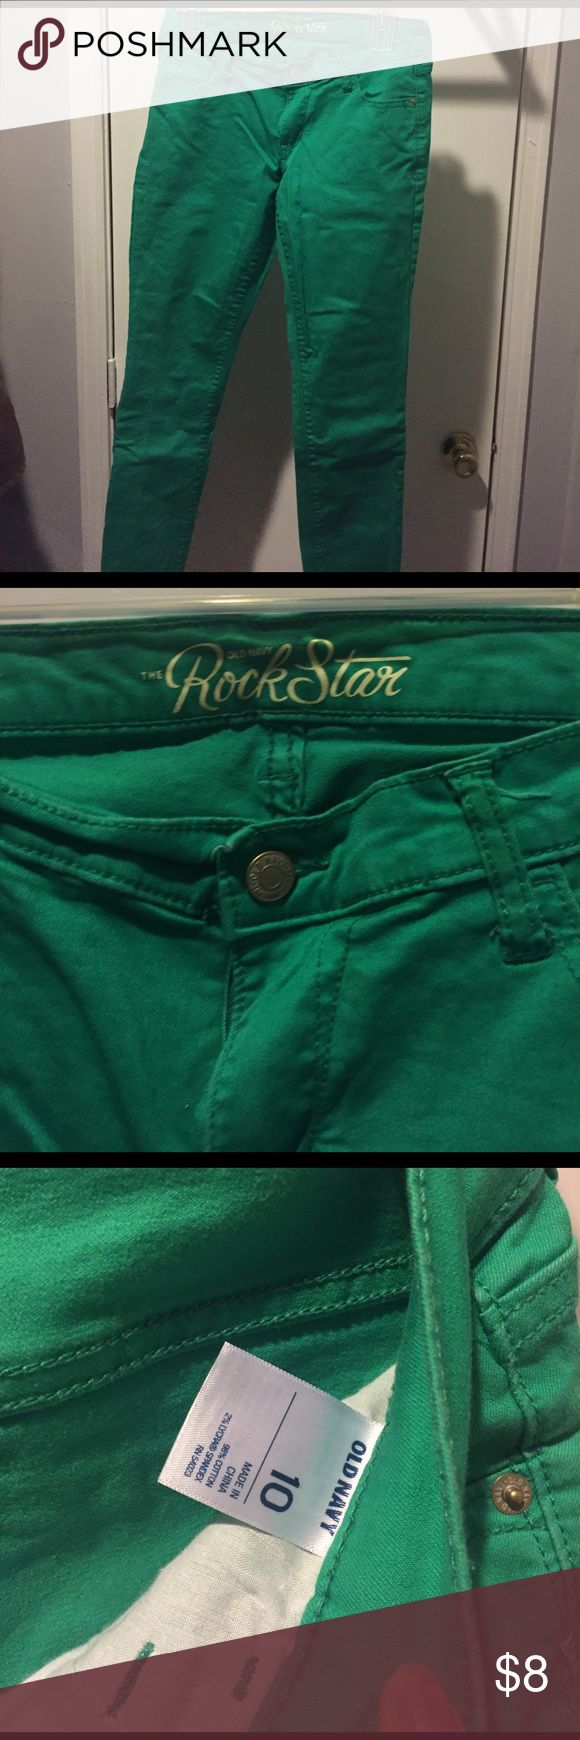 Green old navy rockstar jeans! Green old navy rockstar jeans, skinny leg, size 10, perfect for St Patrick's day! Old Navy Jeans Skinny